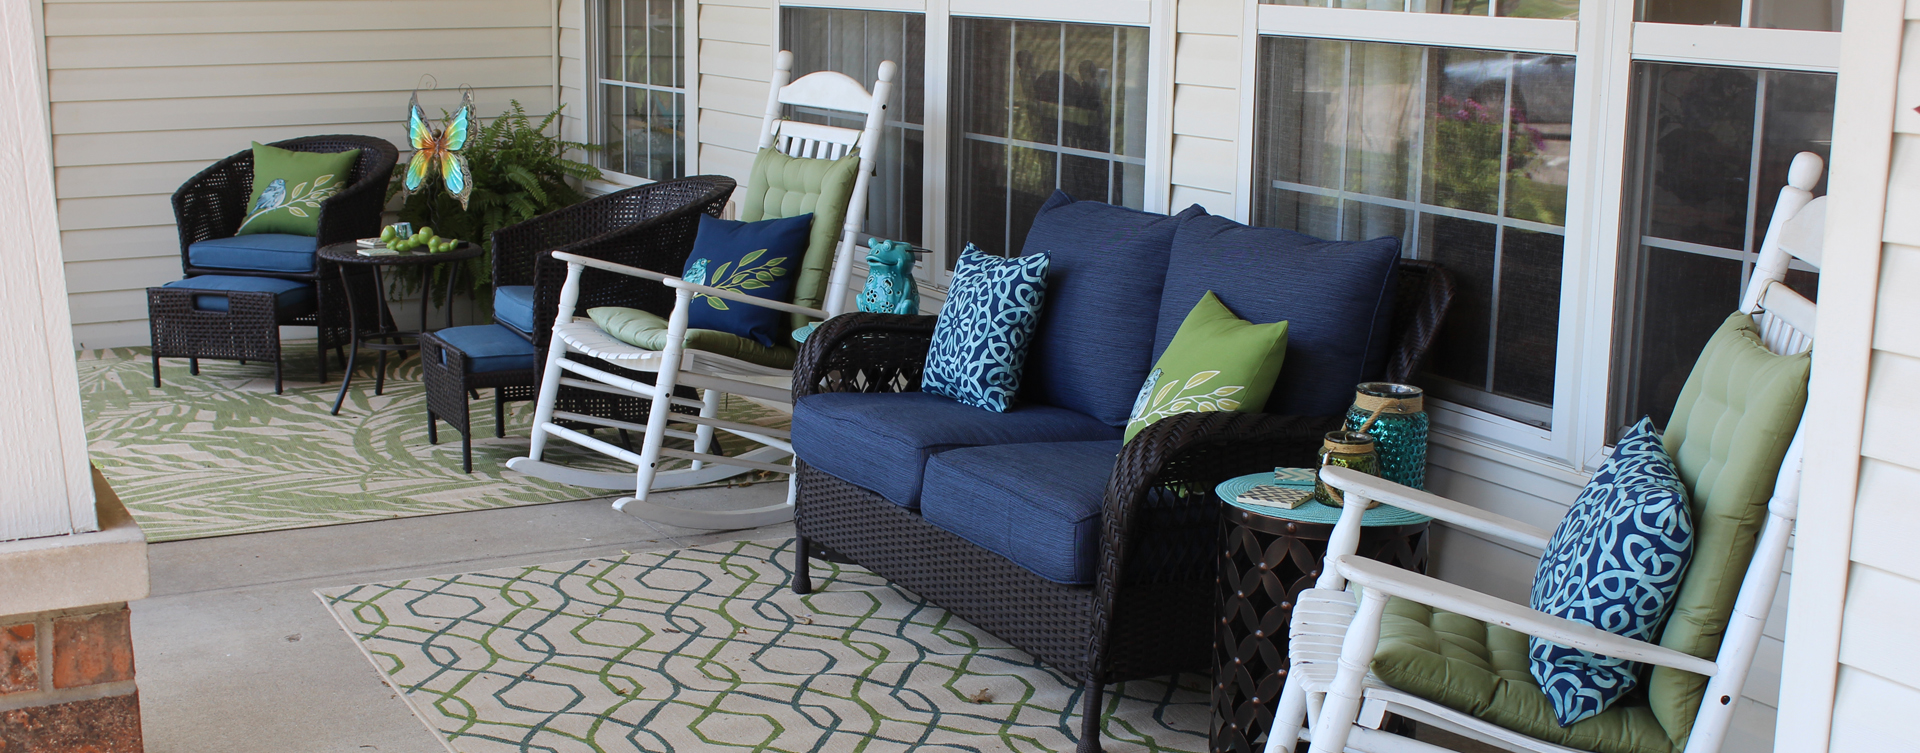 Enjoy conversations with friends on the porch at Bickford of Muscatine